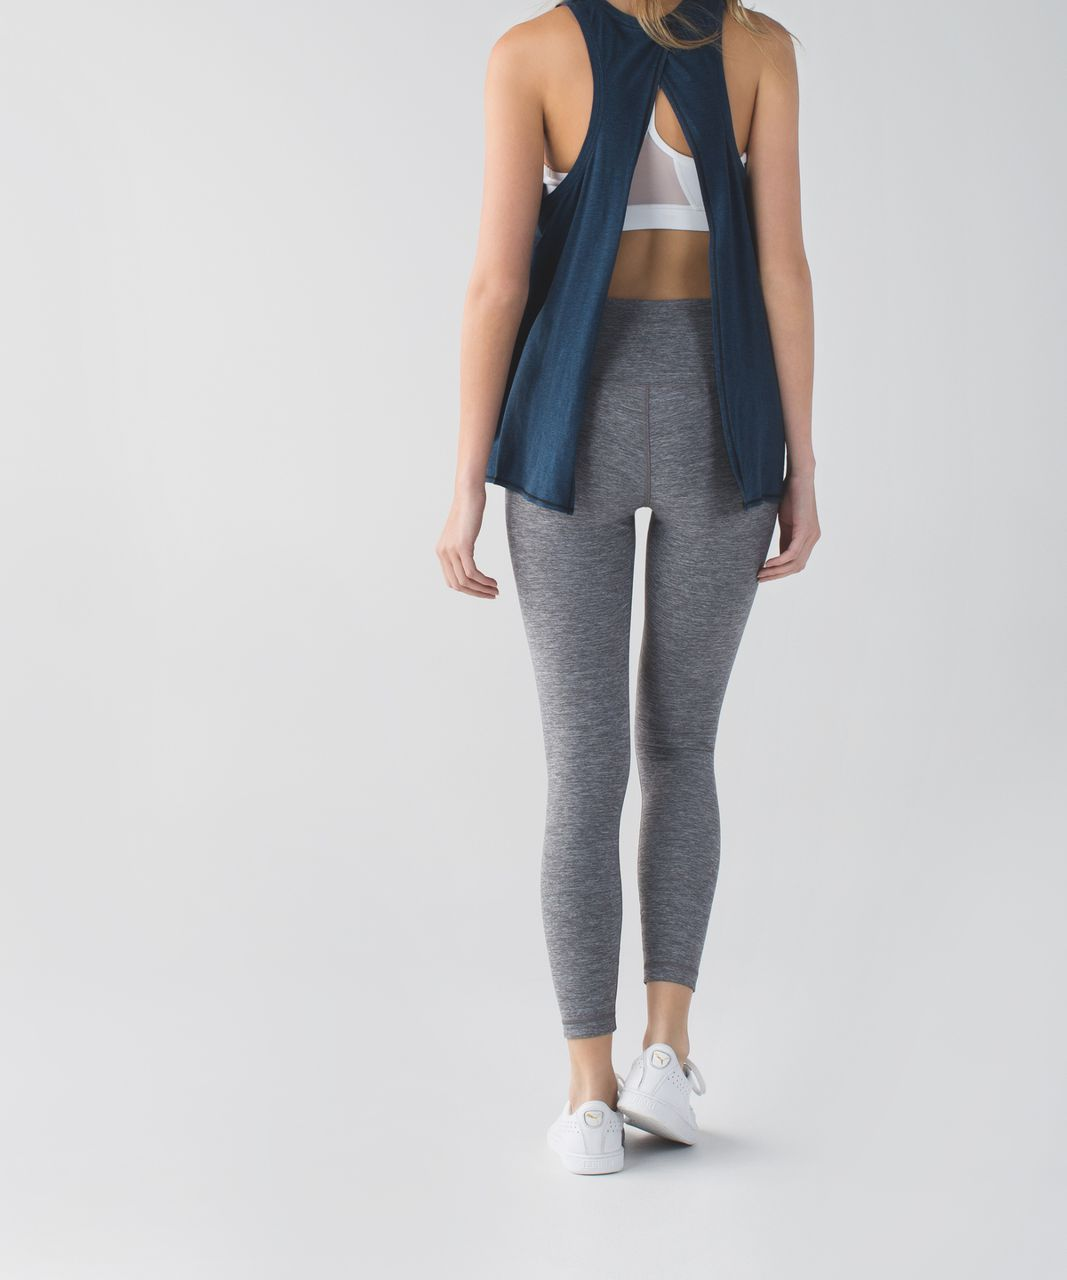 Lululemon High Times Pant (First Release) - Heathered Slate